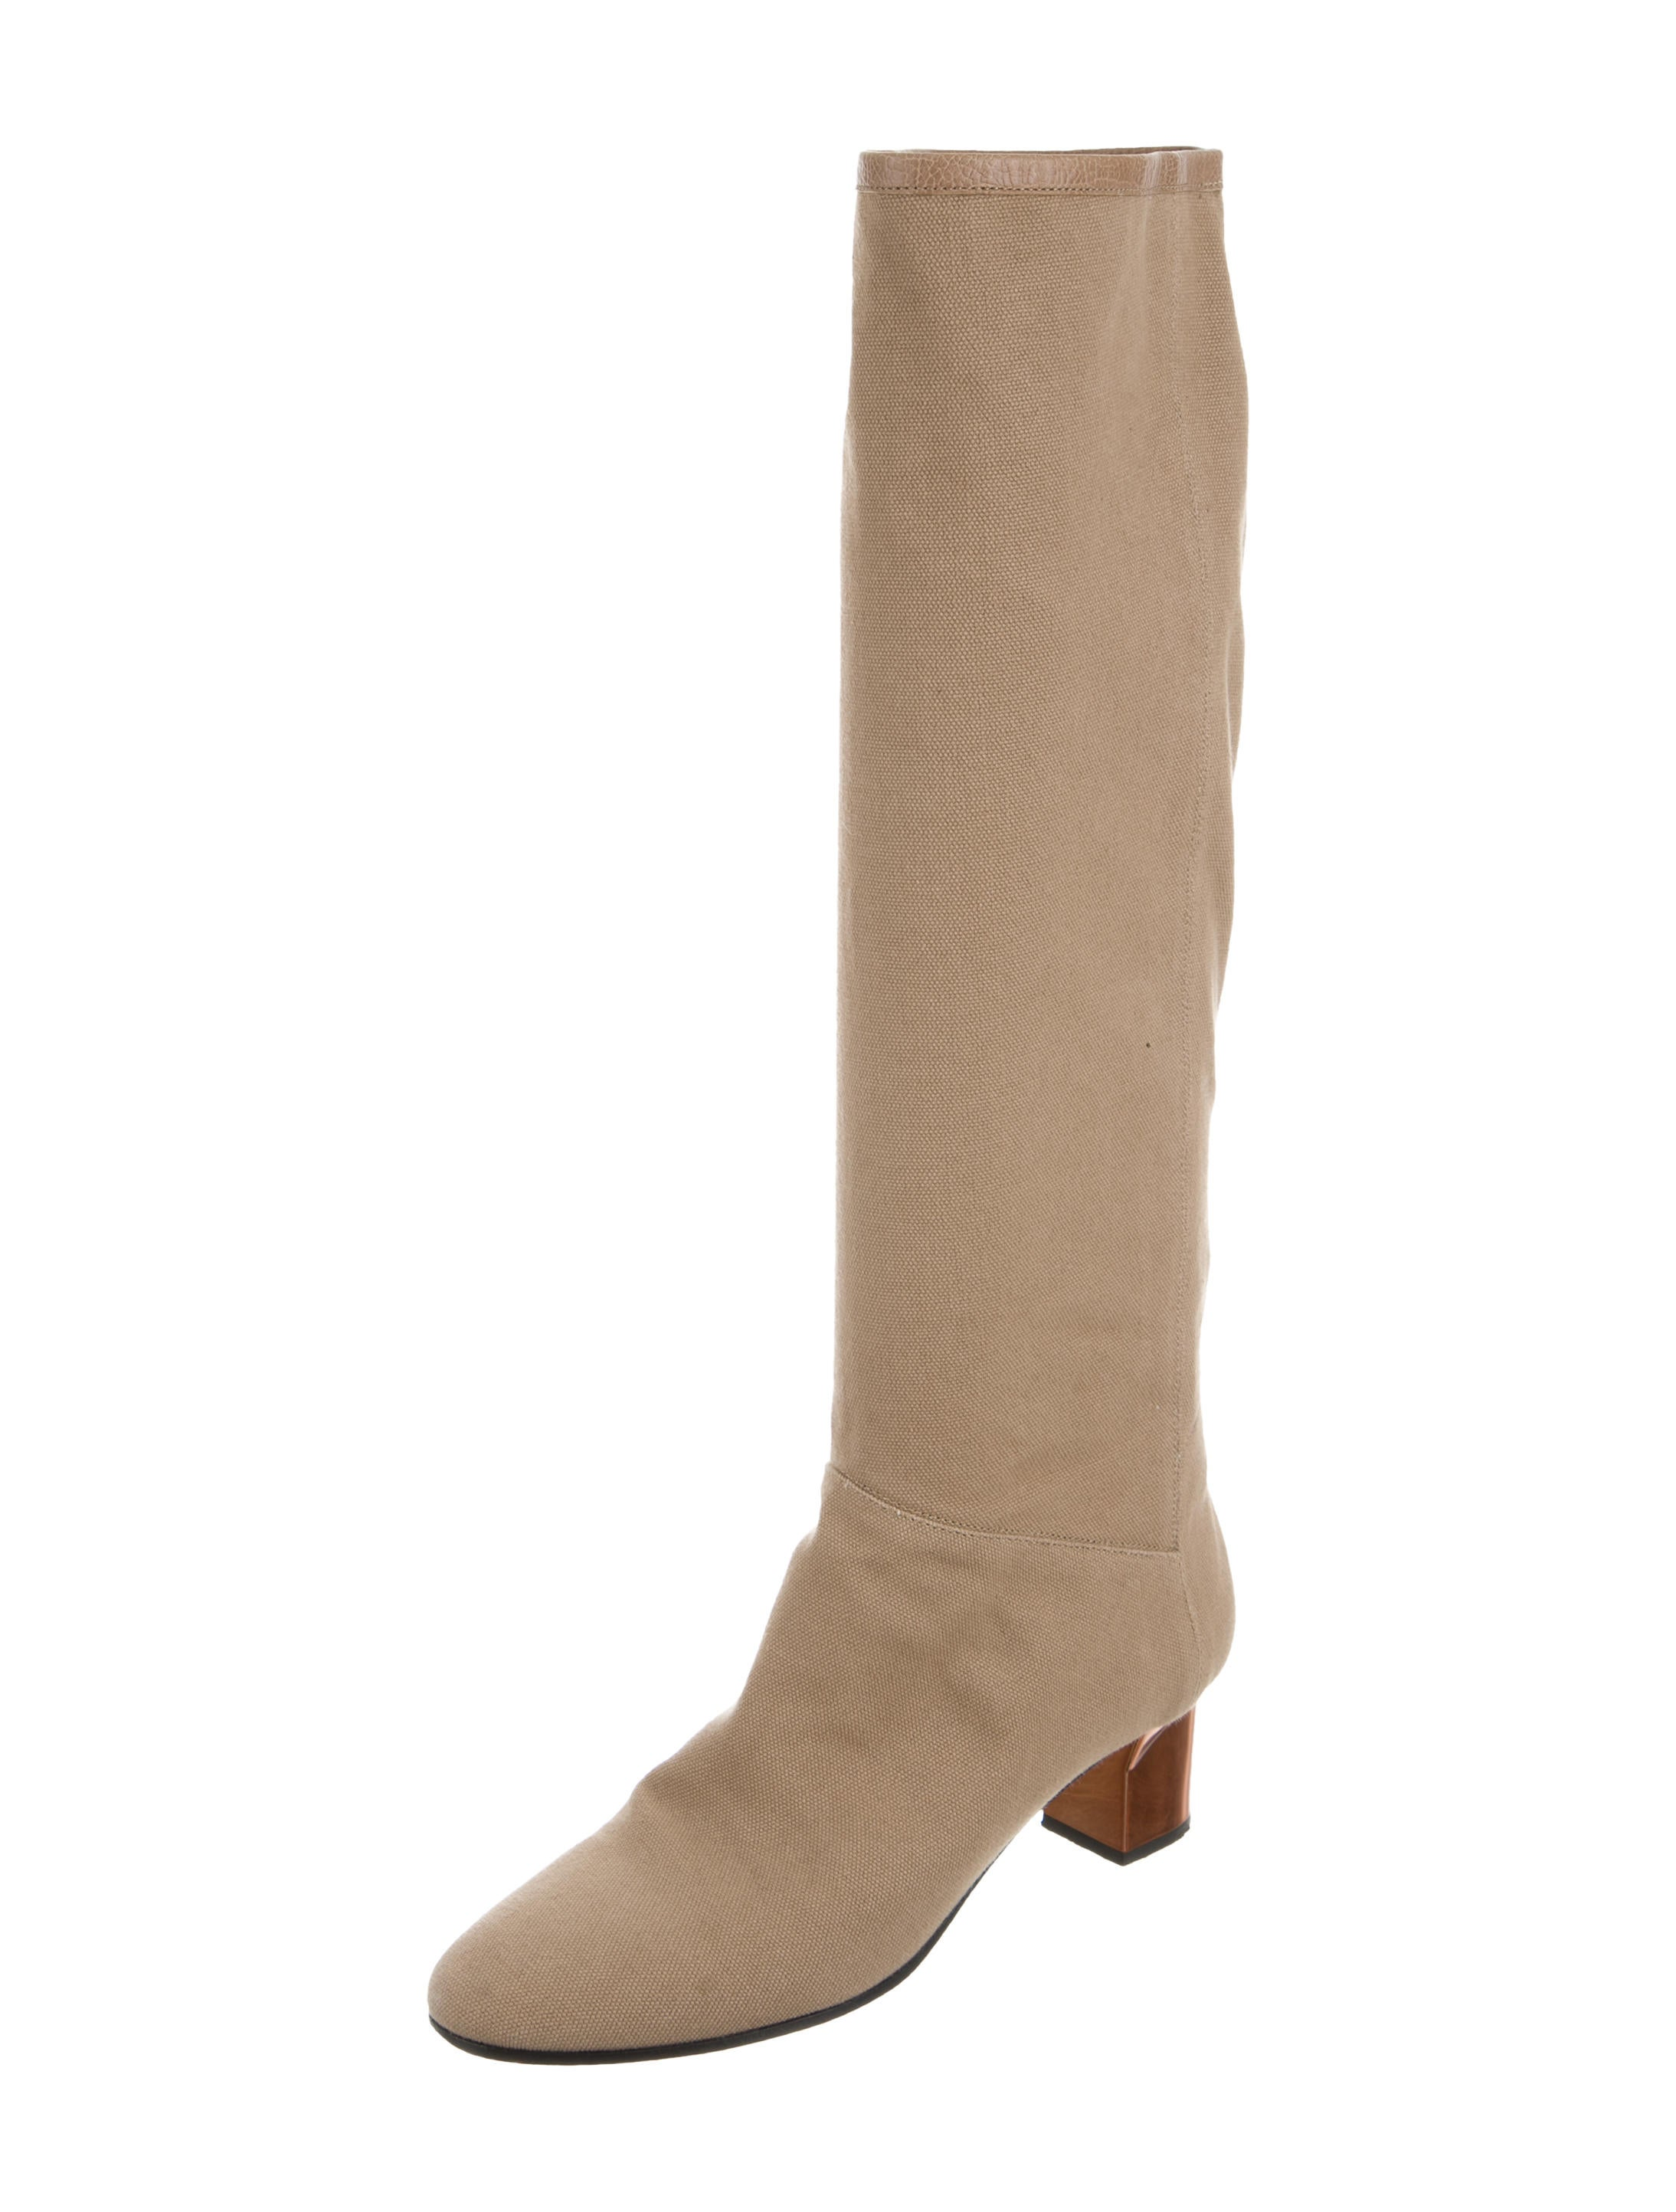 hardy canvas knee high boots shoes pie23471